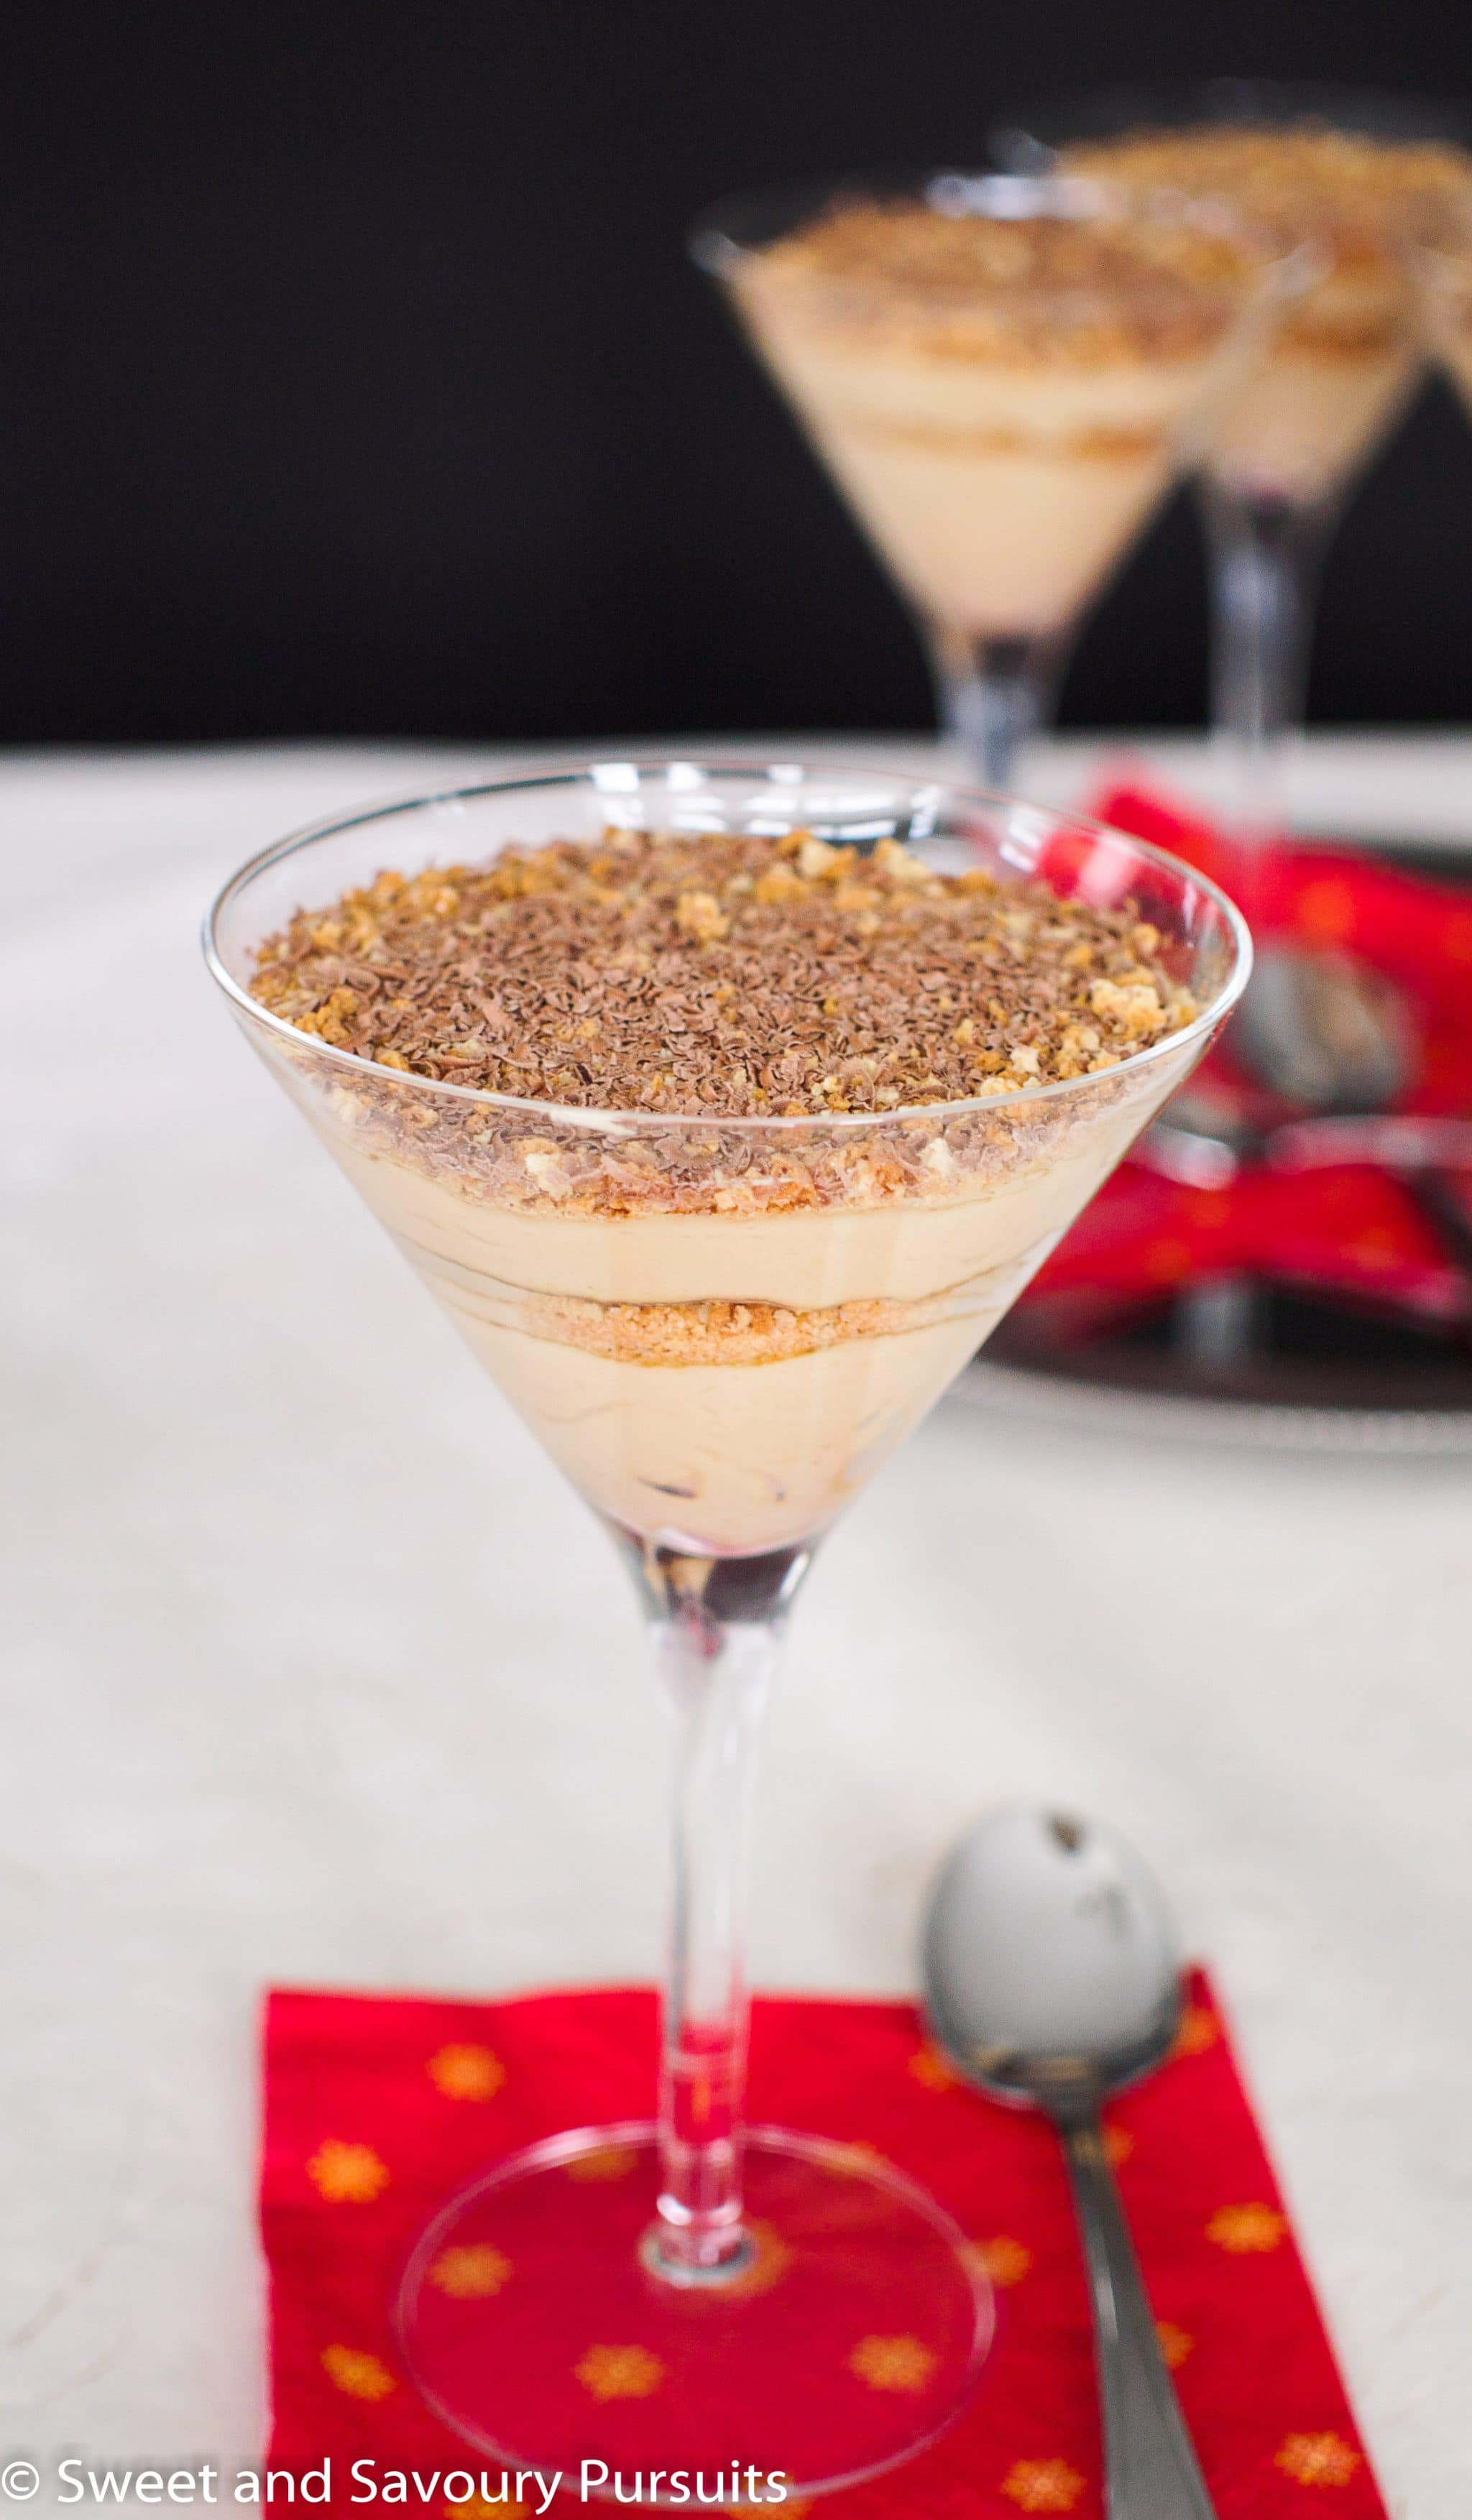 These delicious Mascarpone Espresso Cream and Amaretti Parfaits taste like coffee flavoured cheesecake but take very little time and work to prepare!